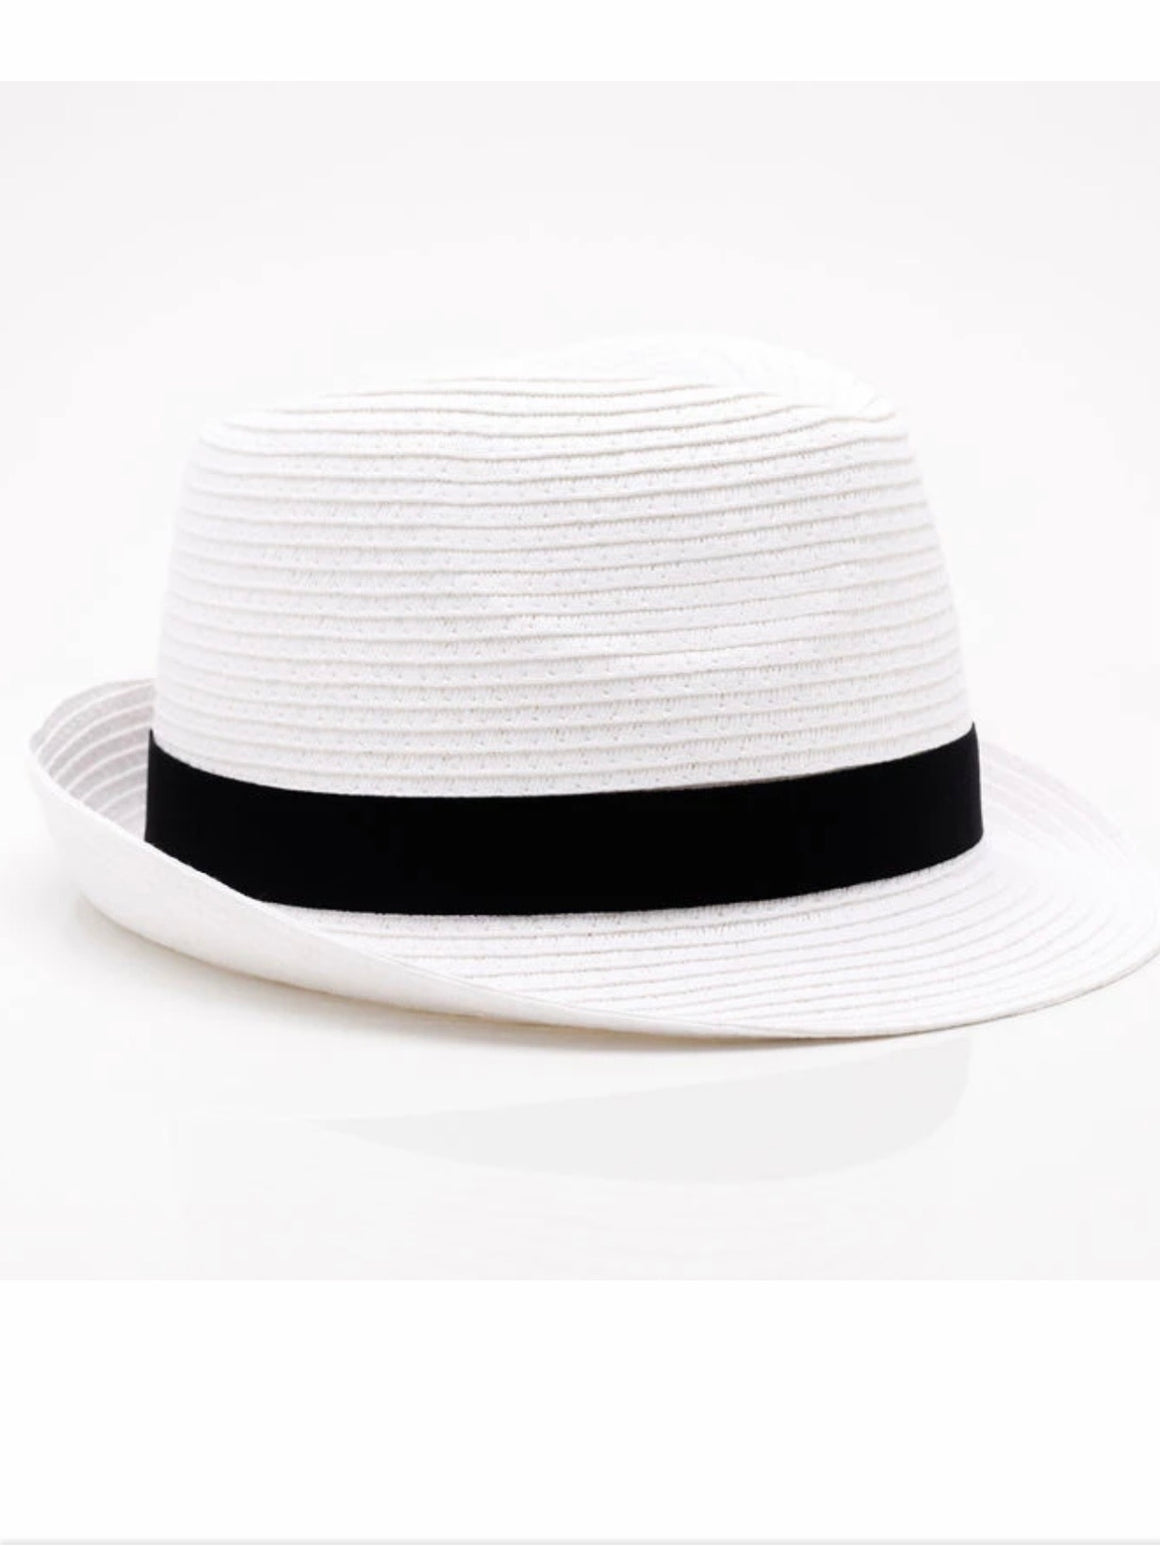 Home-Lee Fedora Hat-White with Black Trim